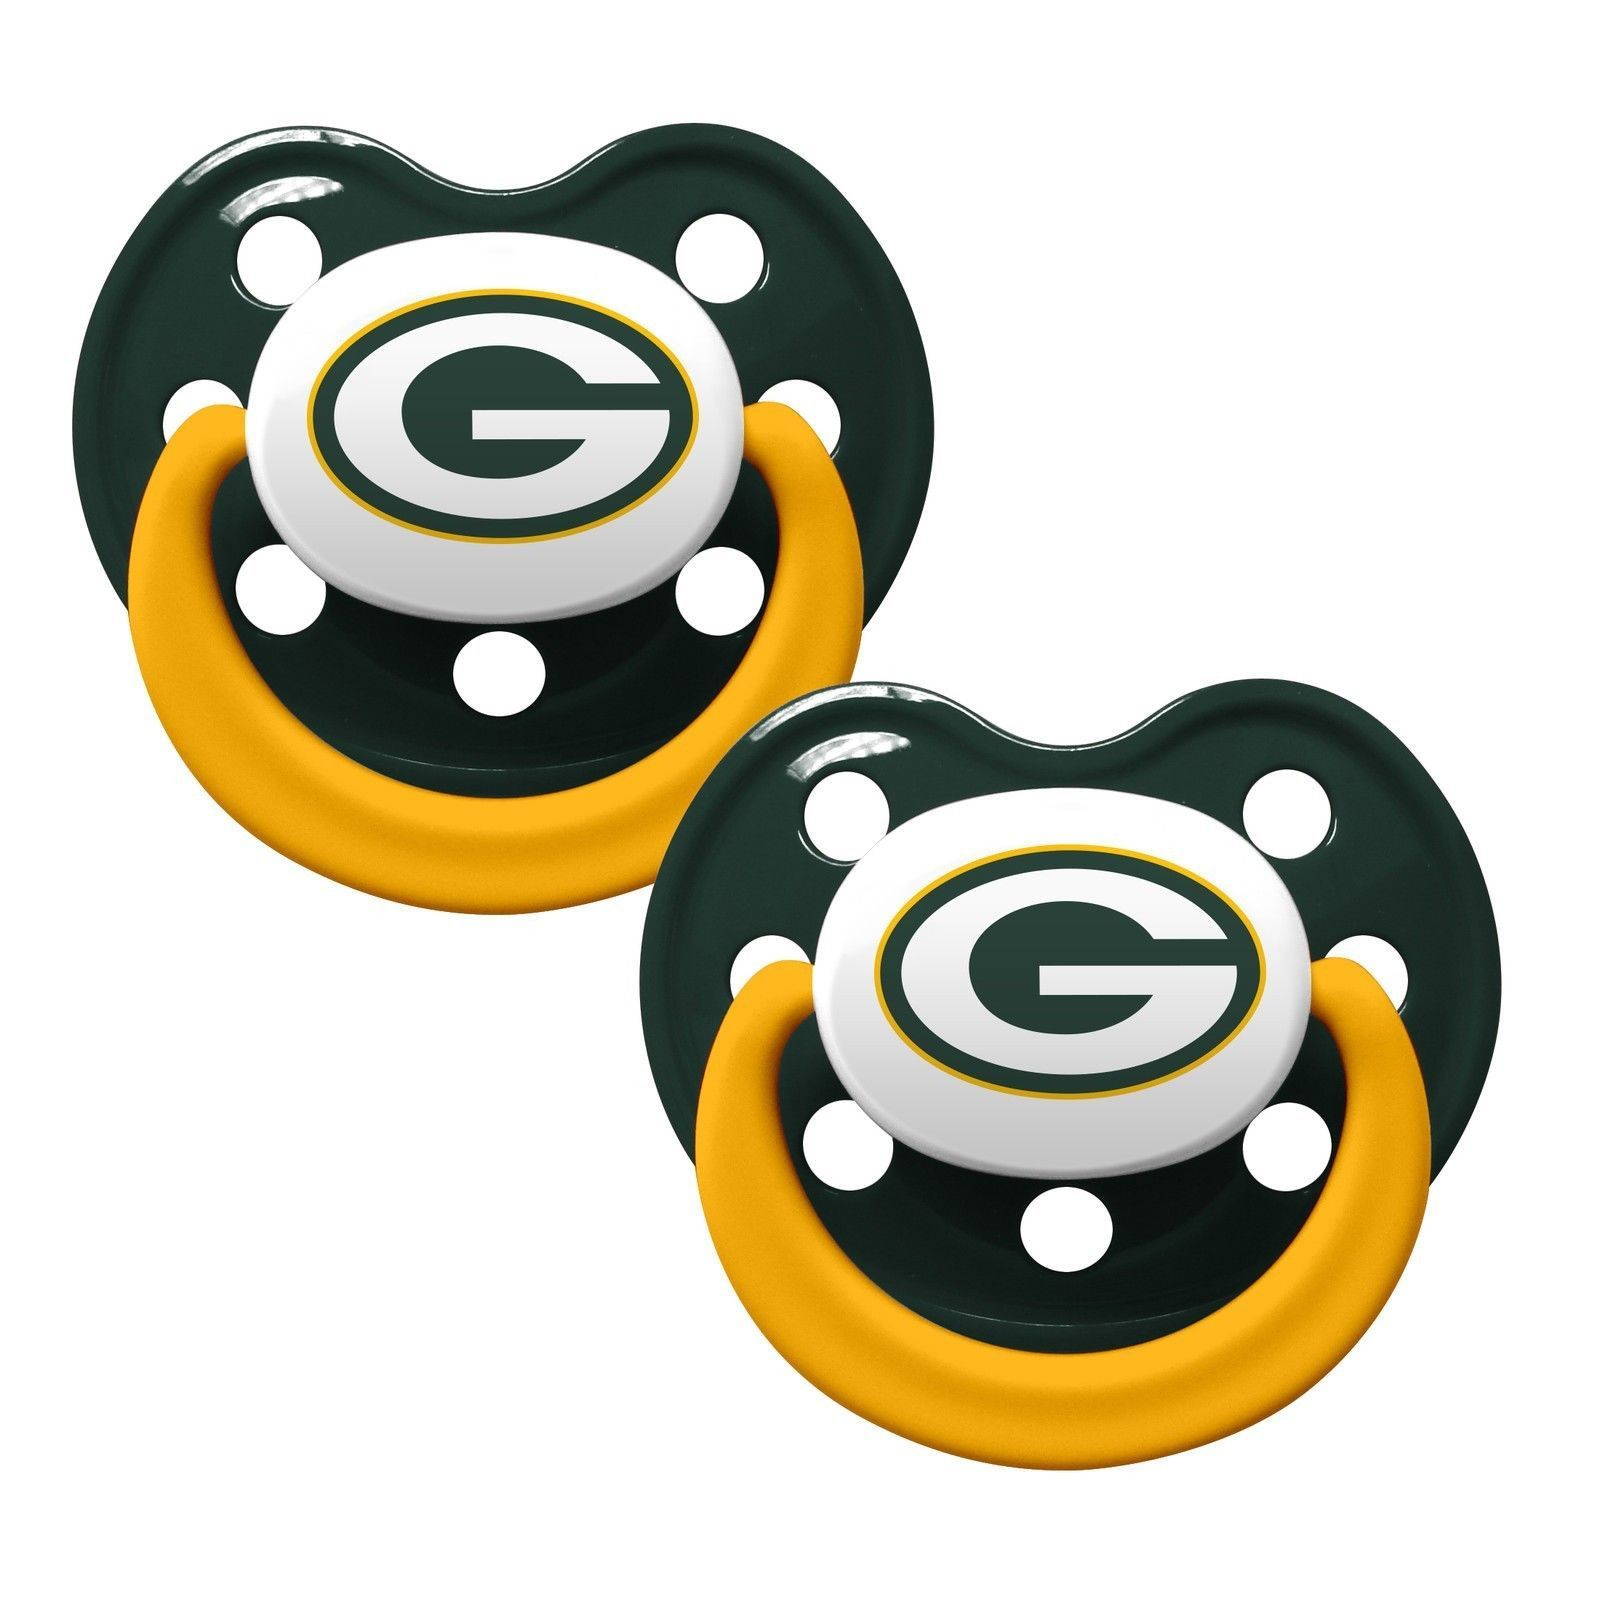 GREEN BAY PACKERS 2-PACK BABY INFANT ORTHODONTIC PACIFIER SET NFL FOOTBALL